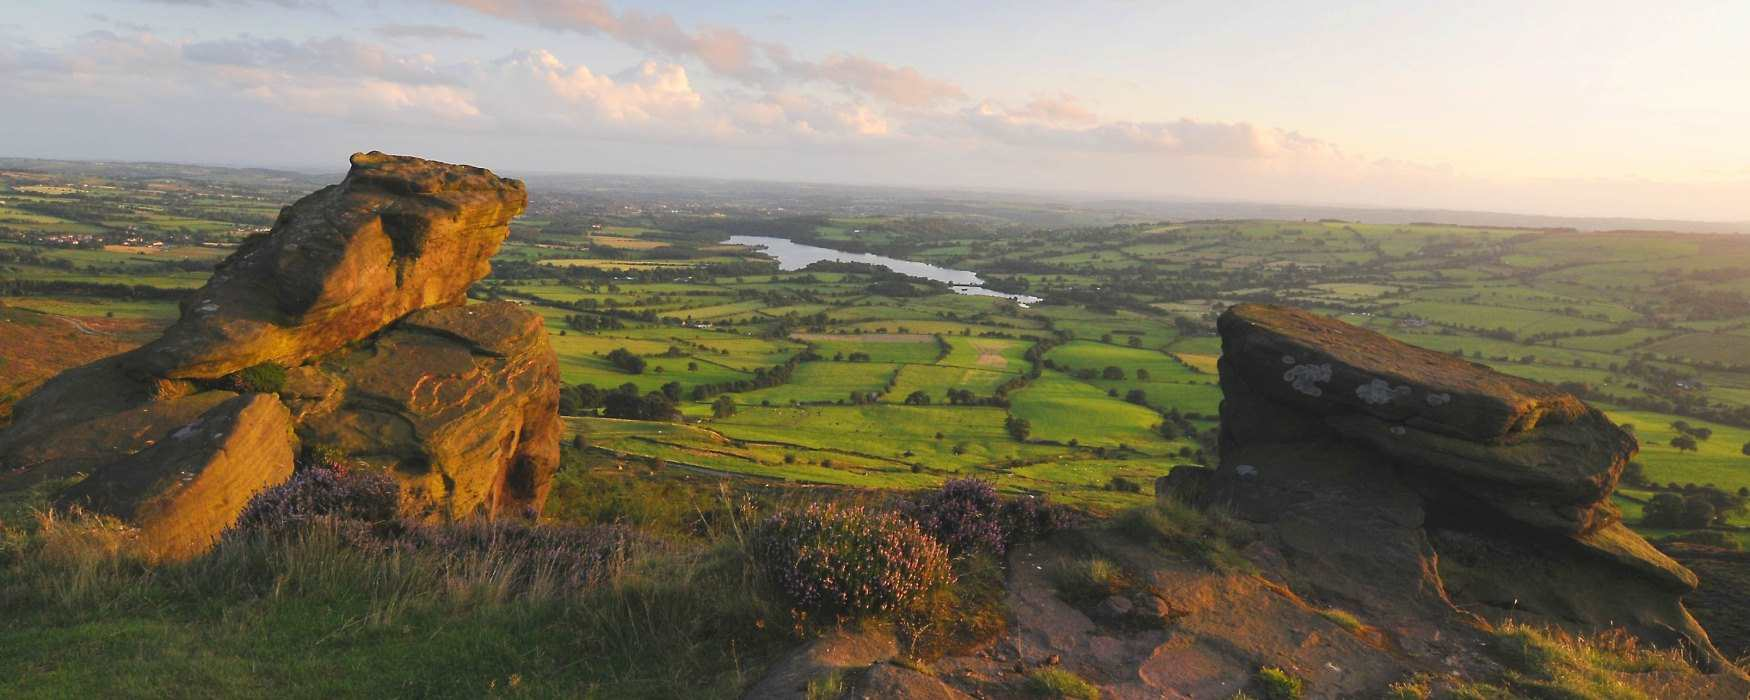 The Roaches in the Staffordshire Moorlands